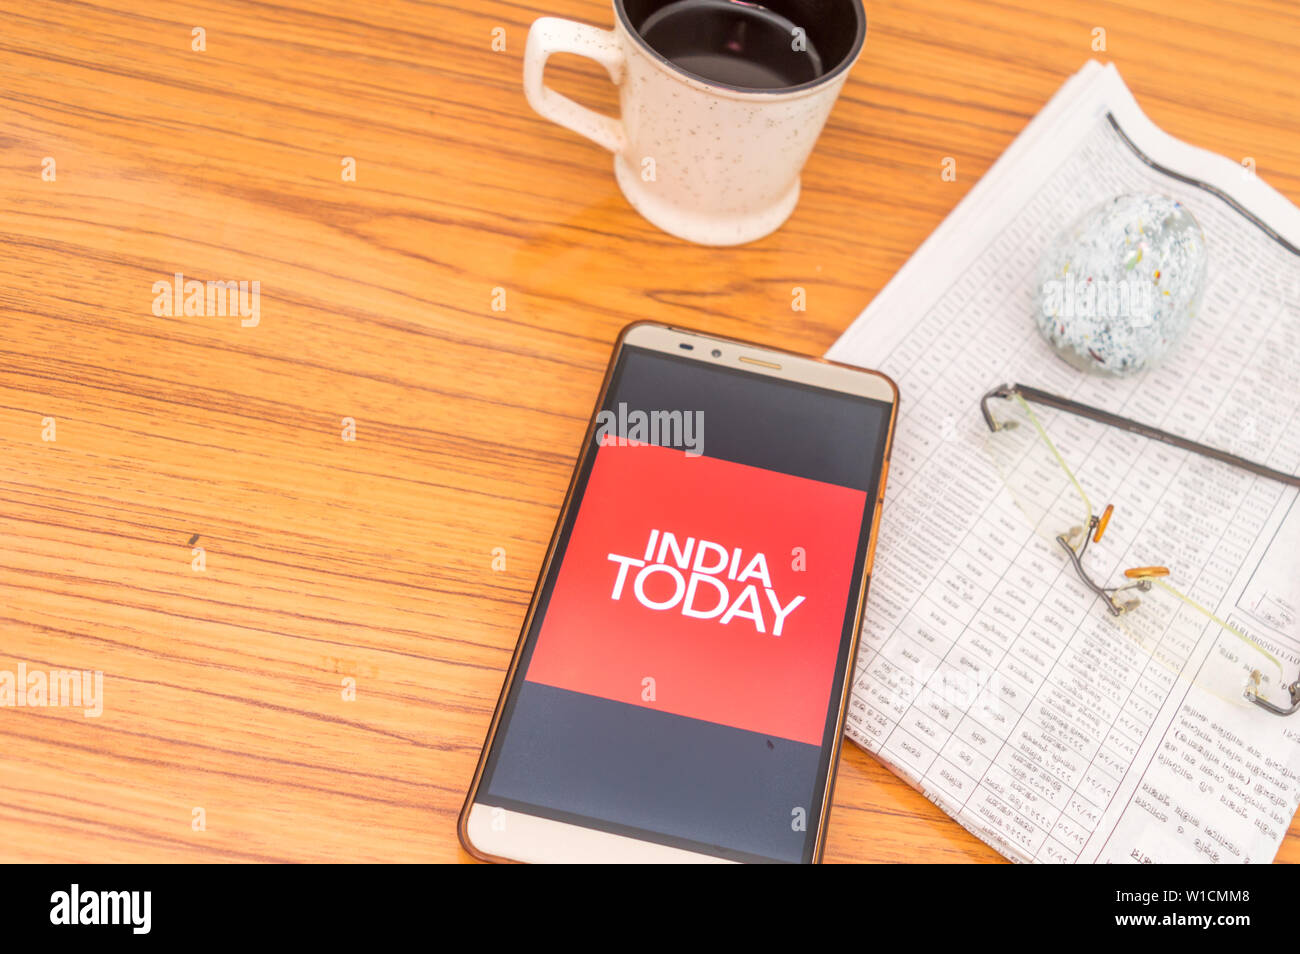 Kolkata, India, February 3, 2019: India Today news app (application) visible on mobile phone screen beautifully placed over a wooden table with newspa Stock Photo